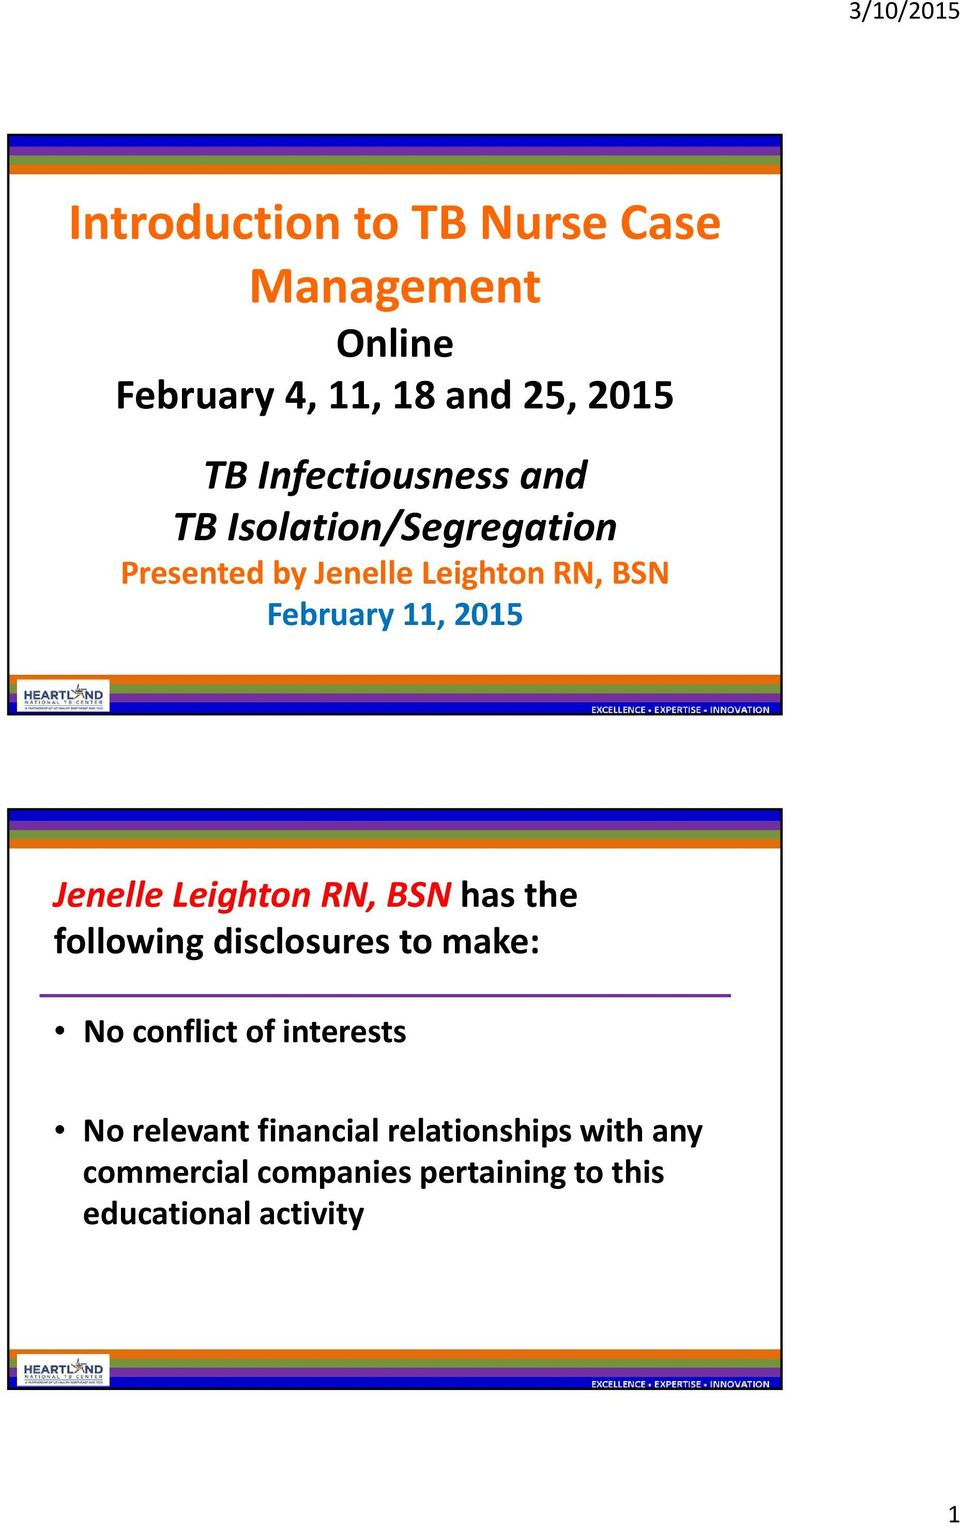 2015 Jenelle Leighton RN, BSN has the following disclosures to make: No conflict of interests